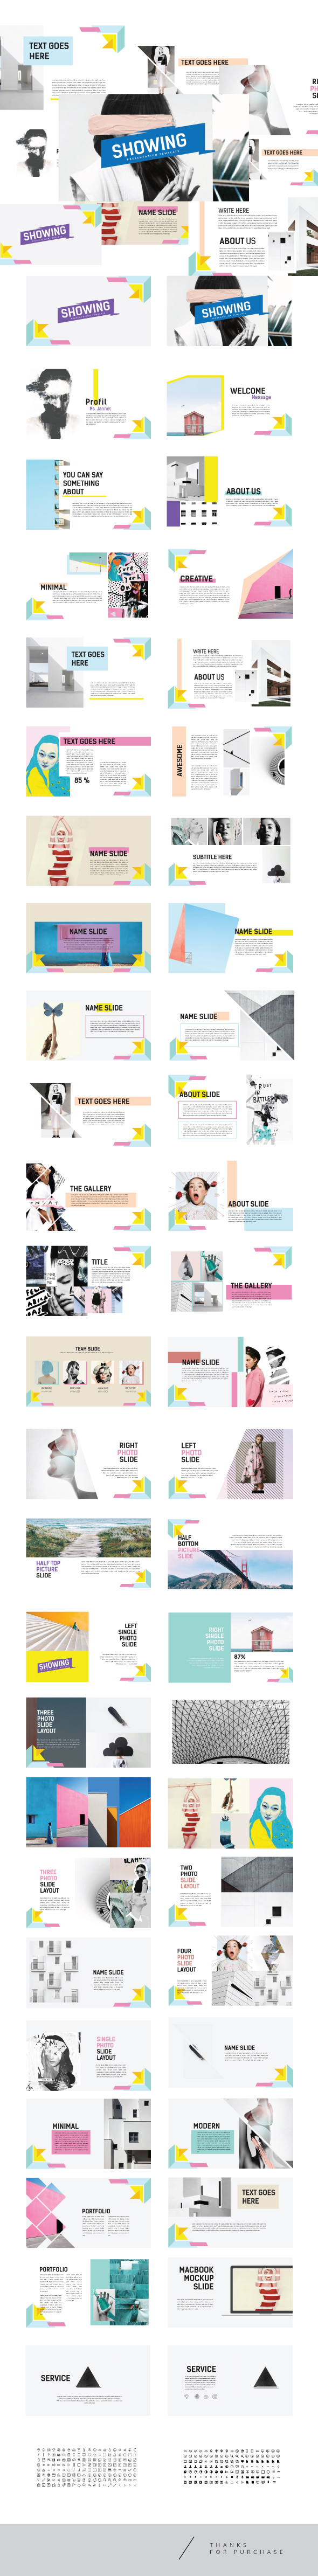 ShowUp - Multipurpose Creative Template PPTX - Abstract PowerPoint Templates